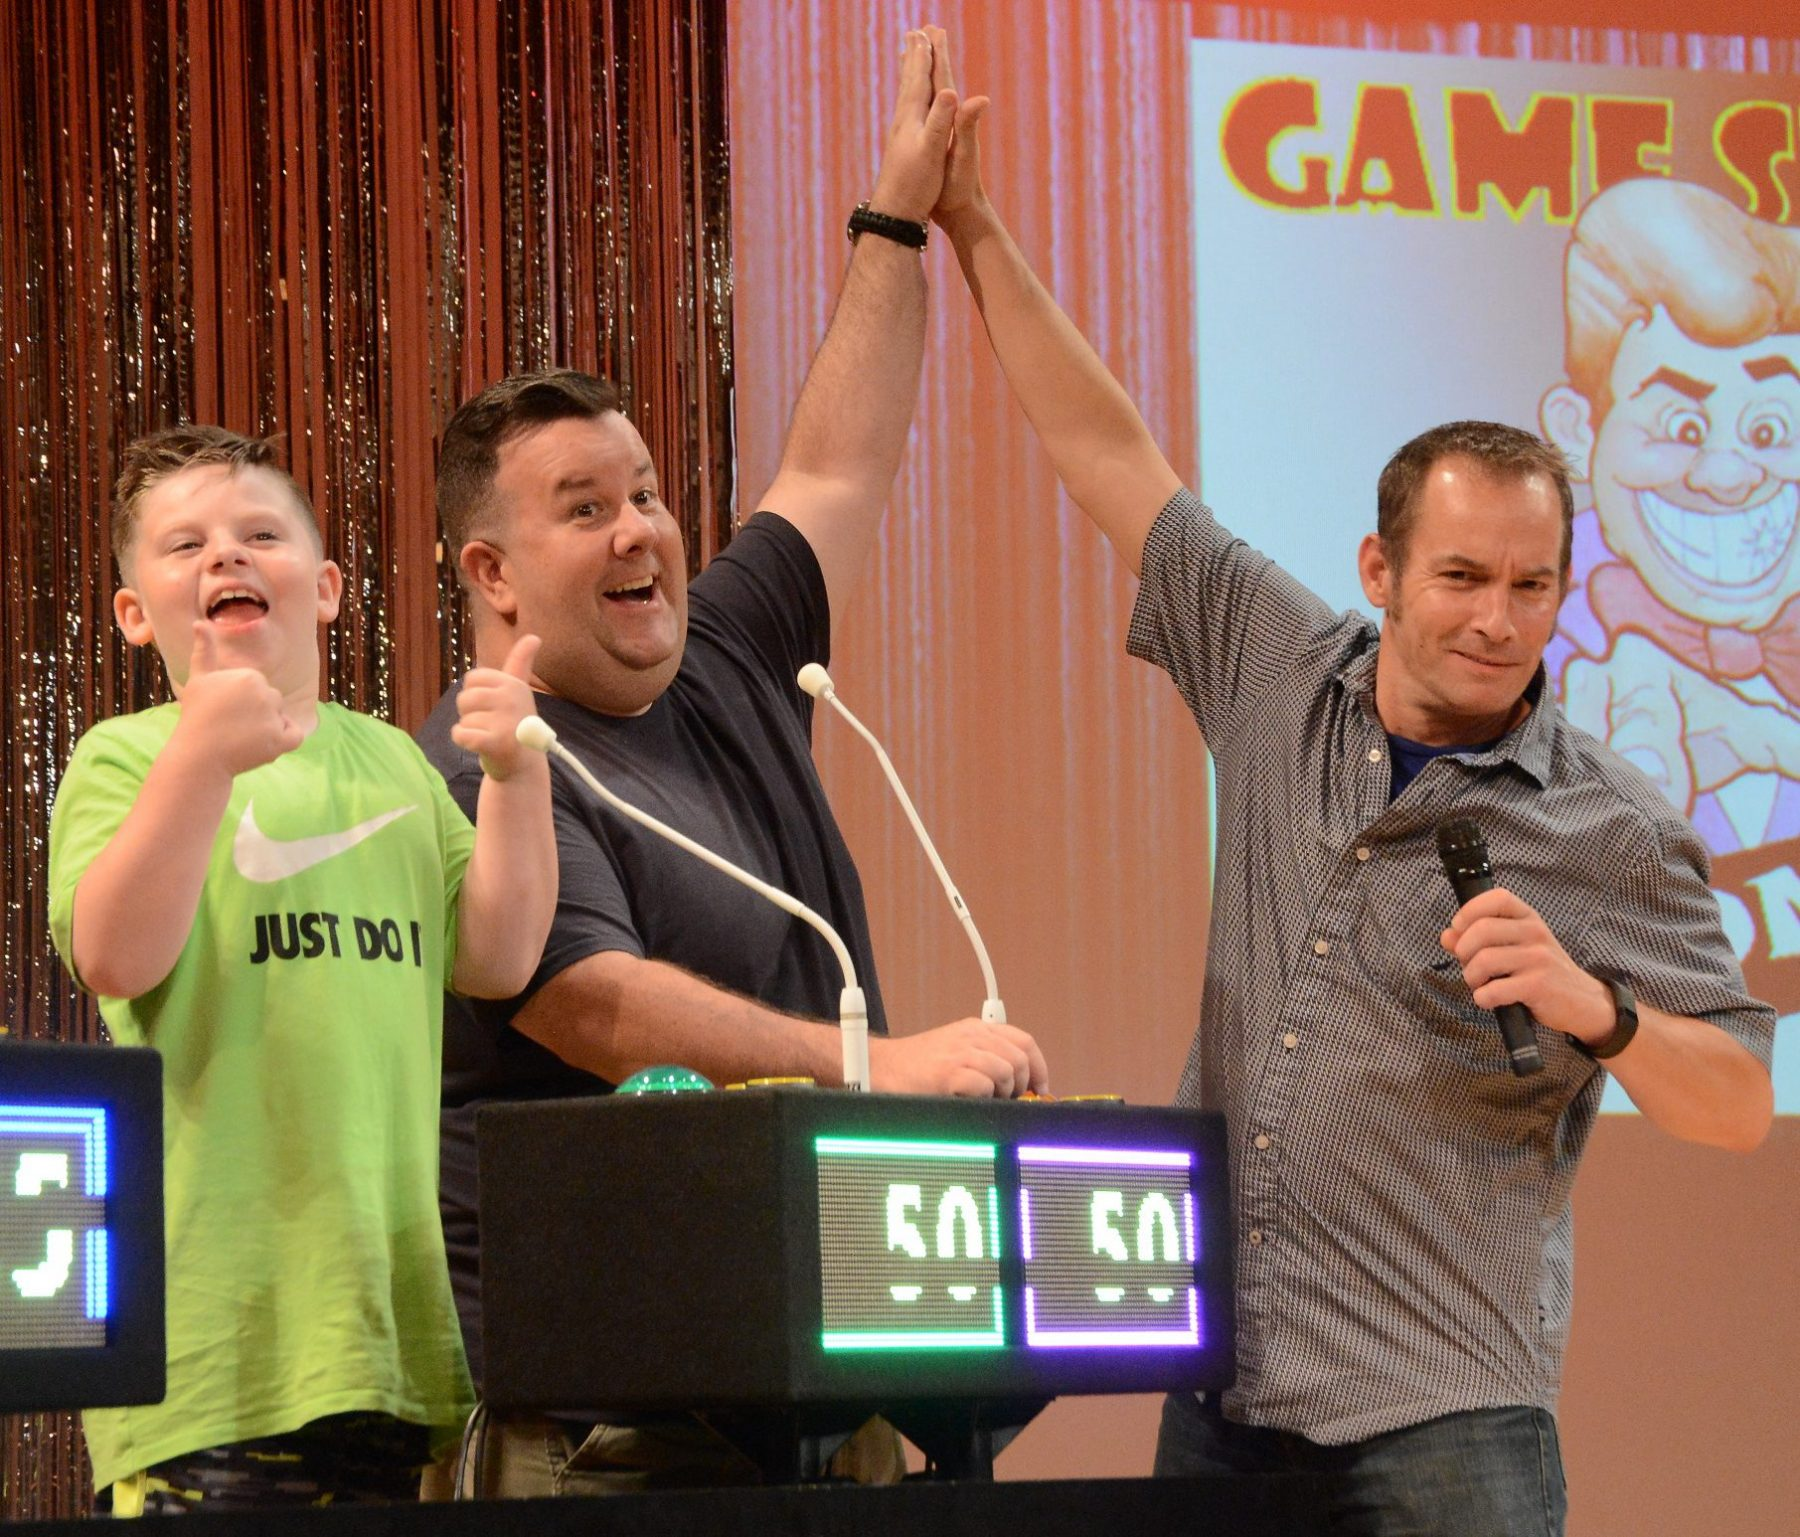 Game show madness night at the French Mountain Playhouse. The host to the right is high fiving a gentleman who is wearing a dark grey shirt and smiling. Next to him is a younger boy in a lime green t shirt smiling and giving two thumbs up! In front of them are microphones, and their score boards which shows 50 points each in green and purple lights. To the left is another score board showing 25 points.